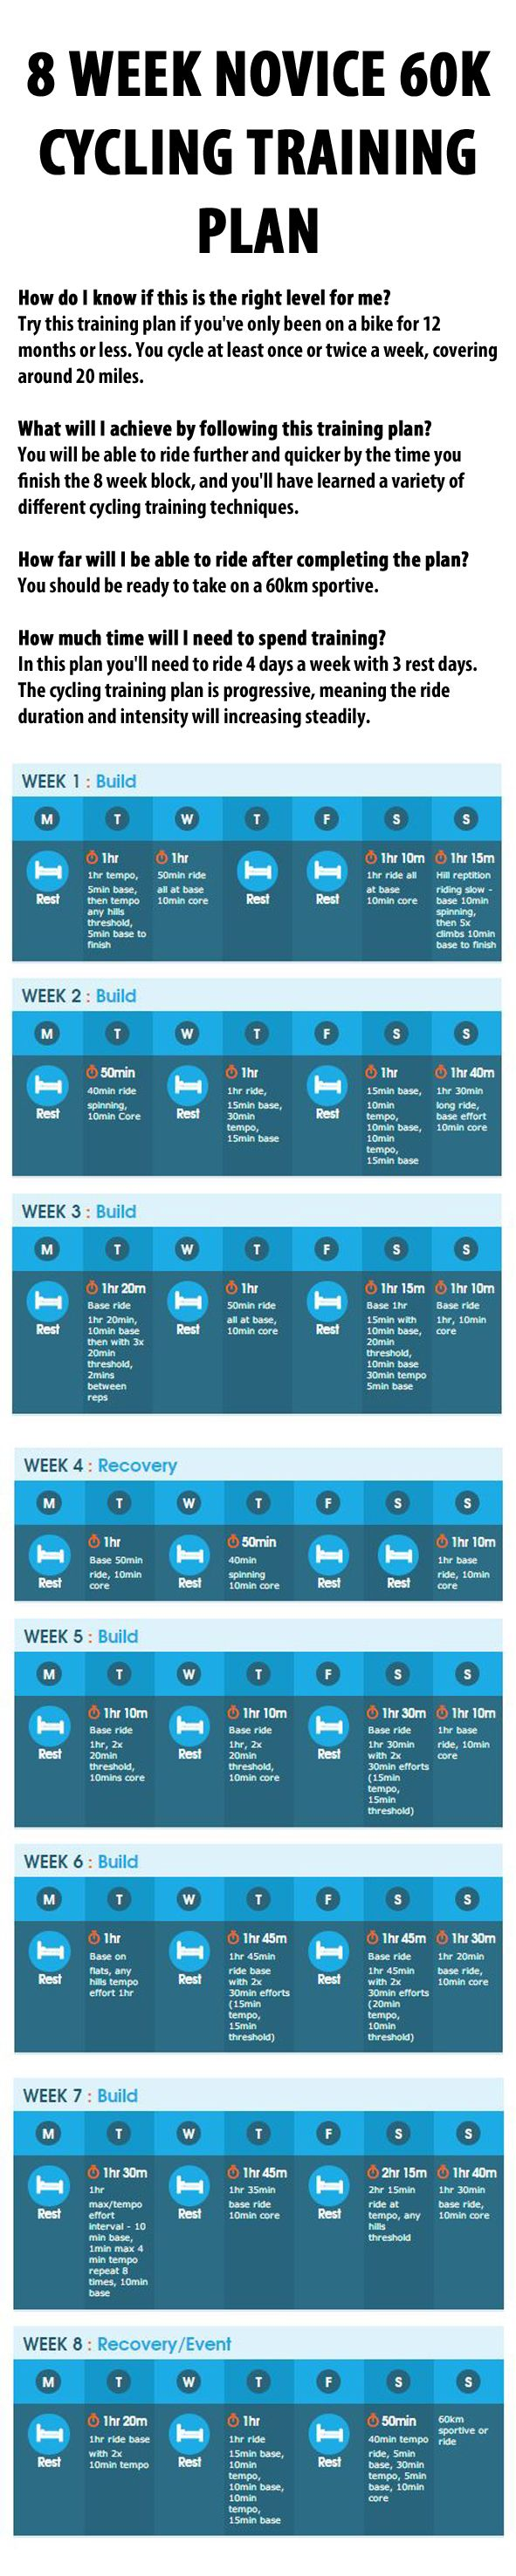 8 WEEK NOVICE 60K CYCLING TRAINING PLAN